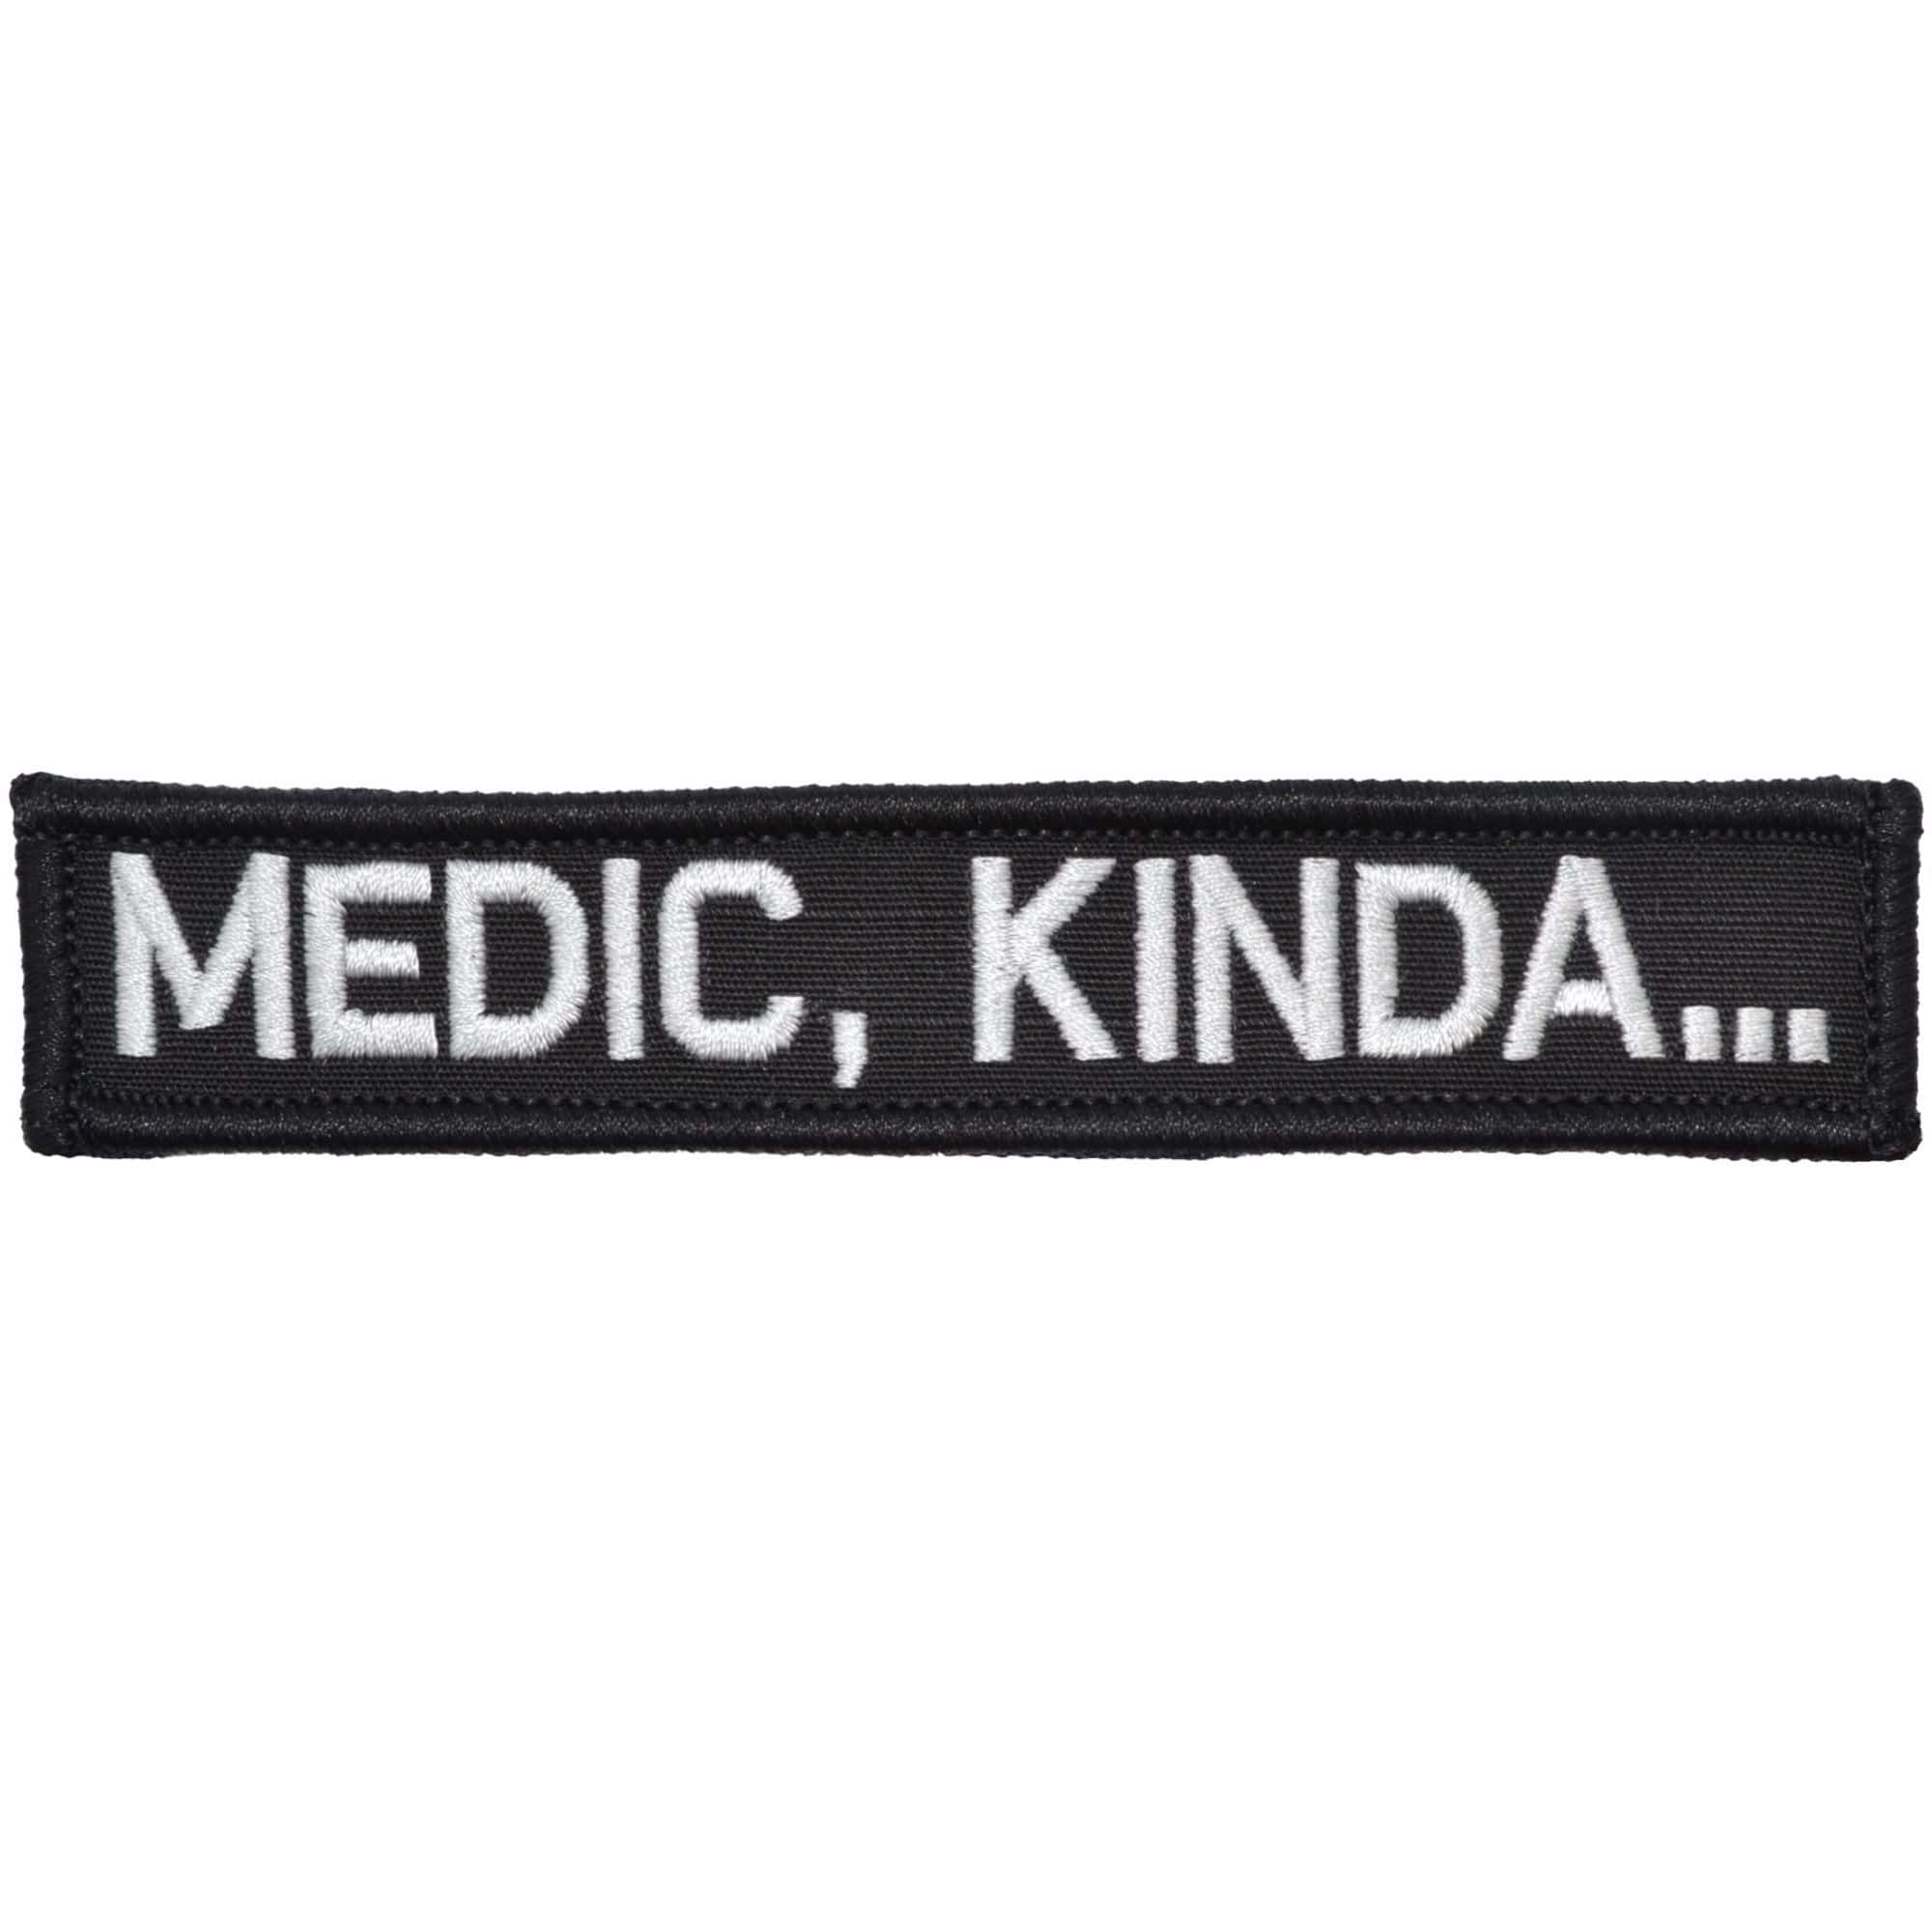 Tactical Gear Junkie Patches Black Medic, Kinda... - 1x5 Patch